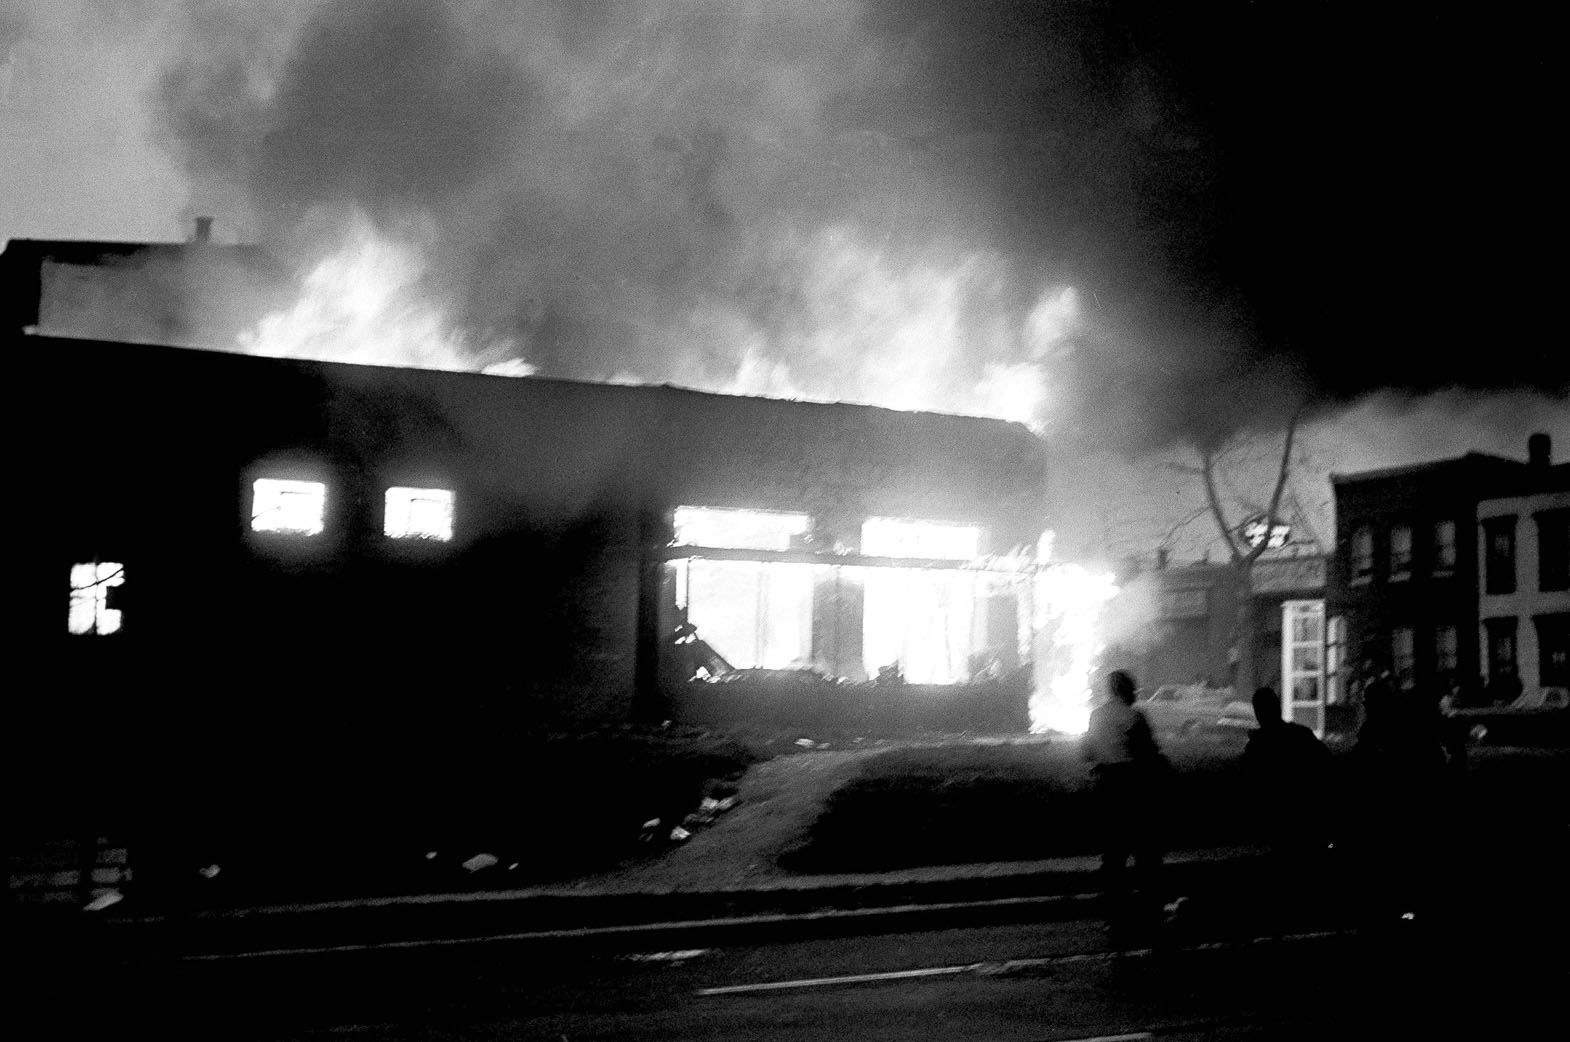 Men in foreground dash past a burning building in northeast Washington at the Third and K Streets on April 5, 1968, in wake of looting and burning, an aftermath of the assassination of Dr. Martin Luther King Jr. in Memphis, Tennessee on April 4. (AP Photo/Dozier Mobley)